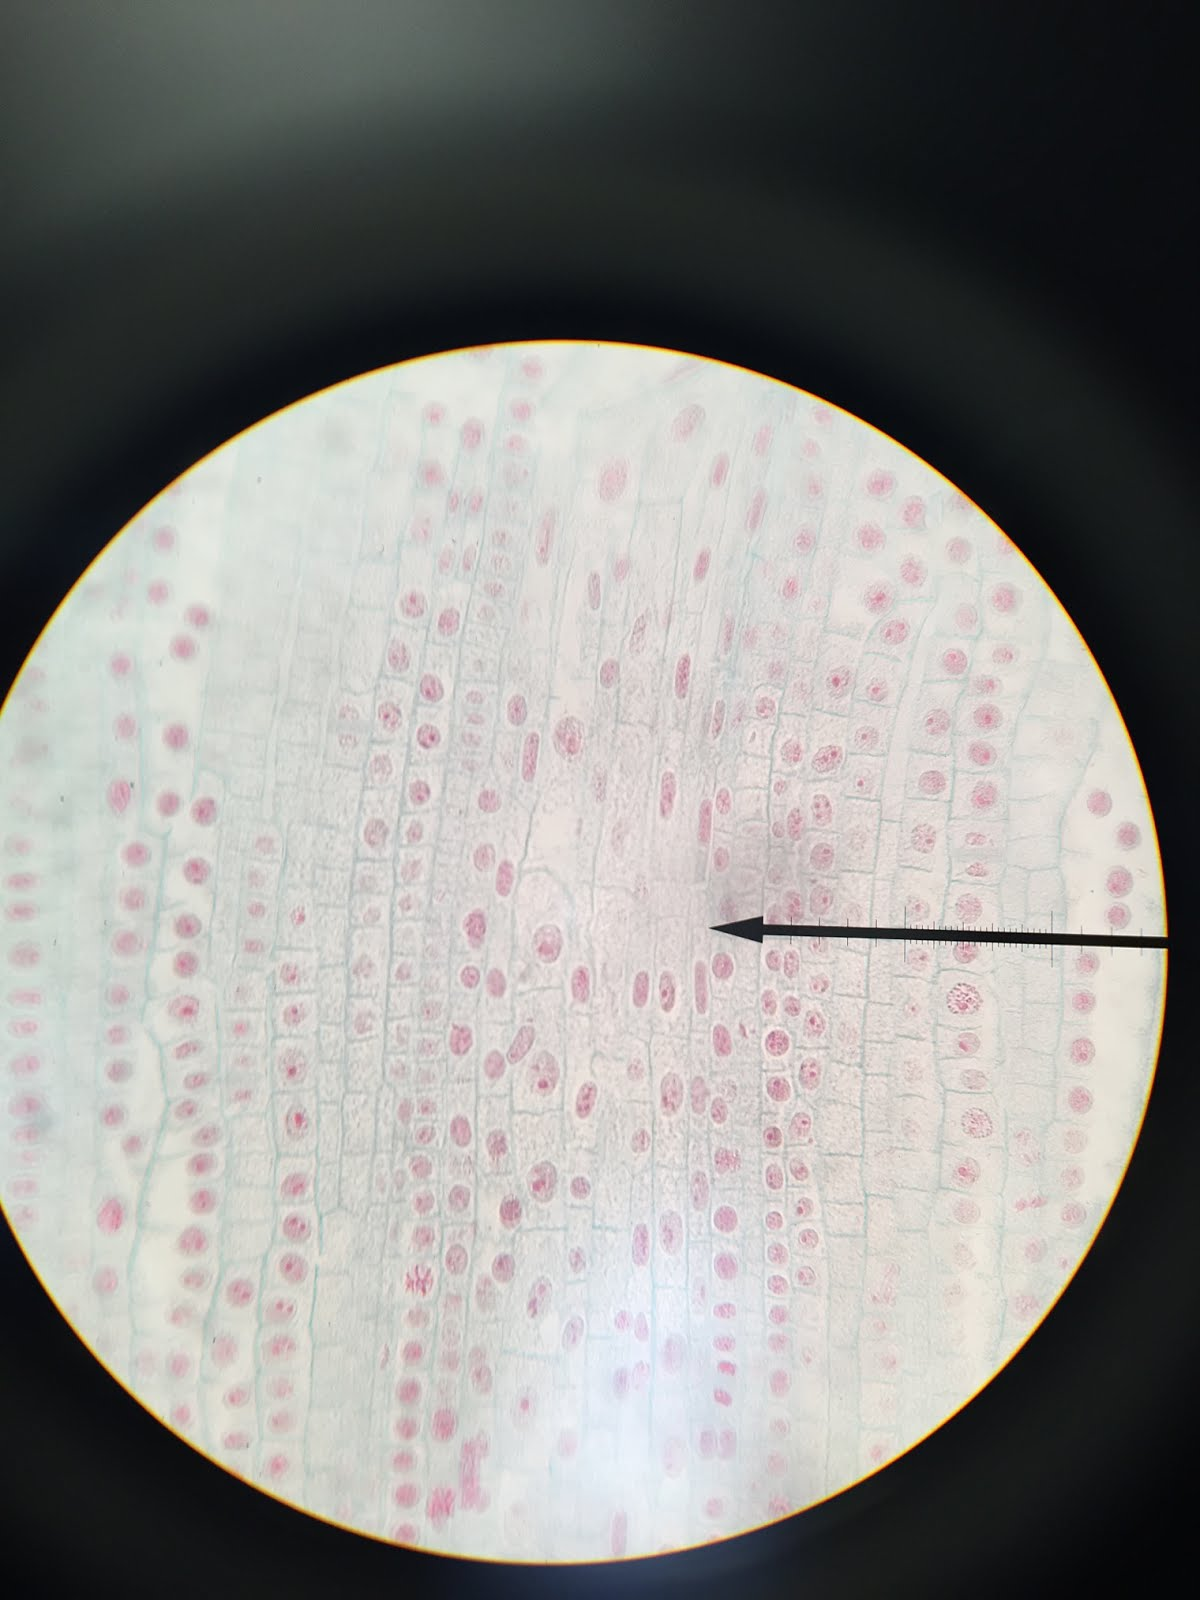 Mitotic Cell Division Lab | AP Biology 2015-2016